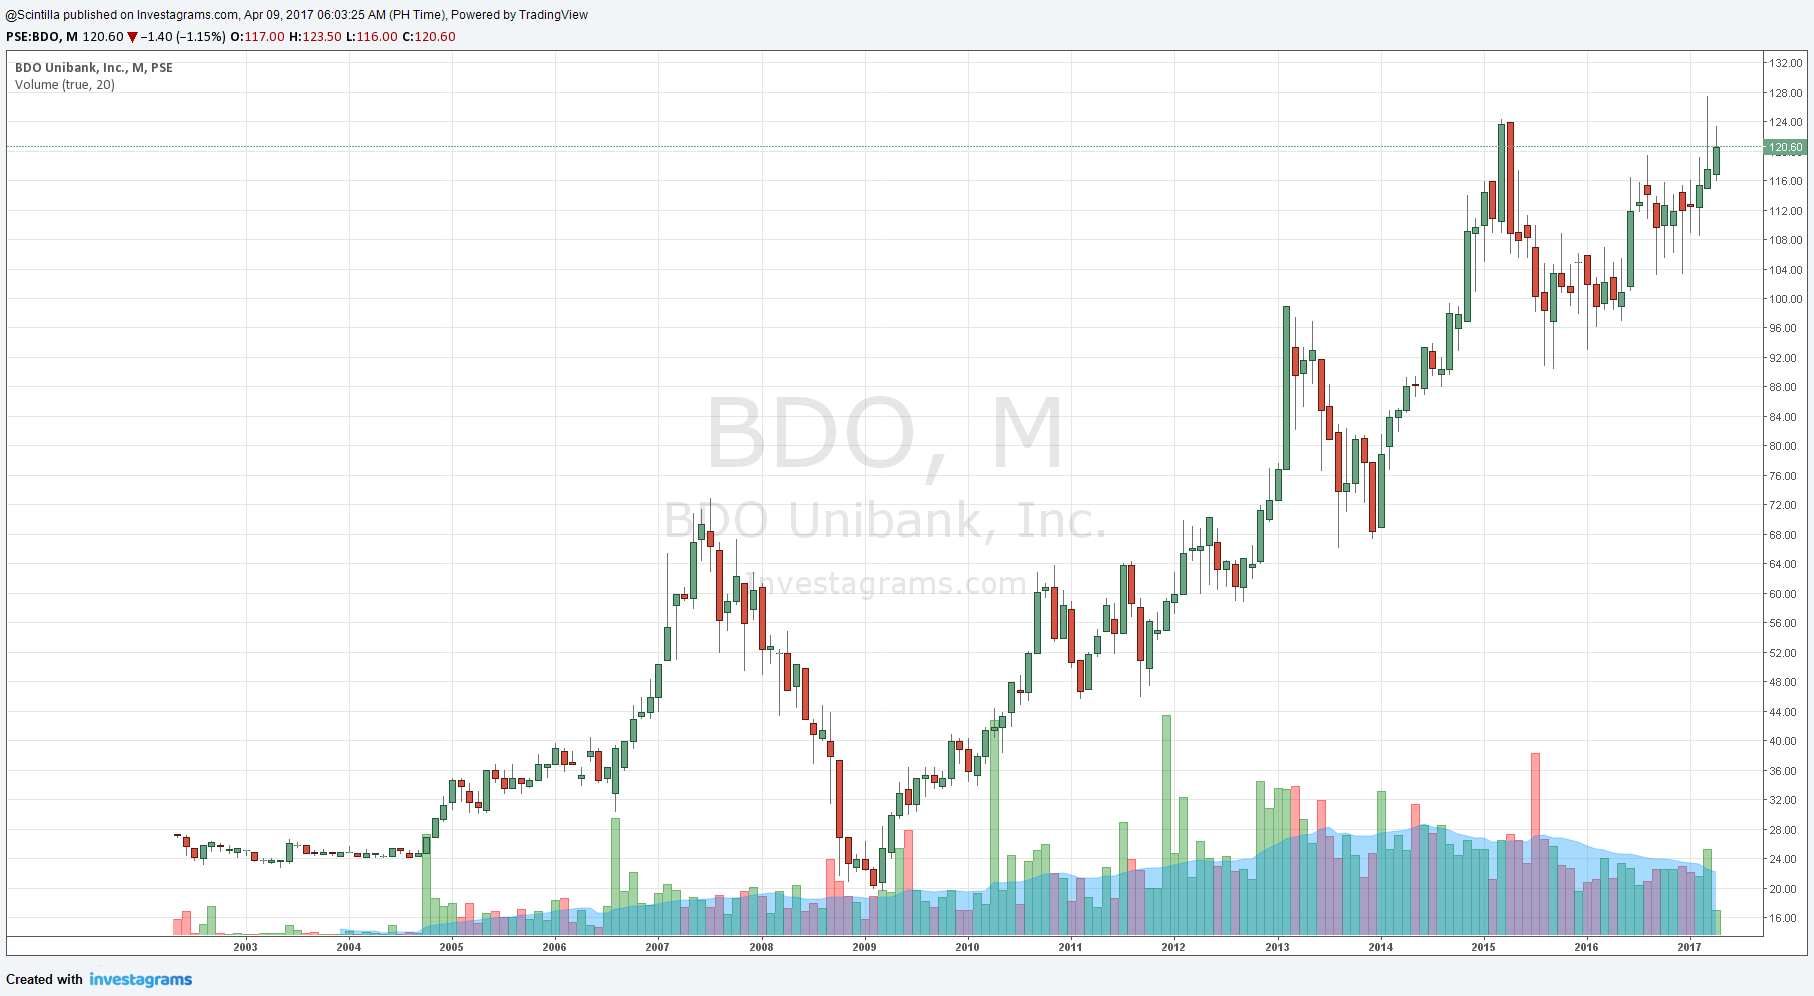 Bdo forex rate